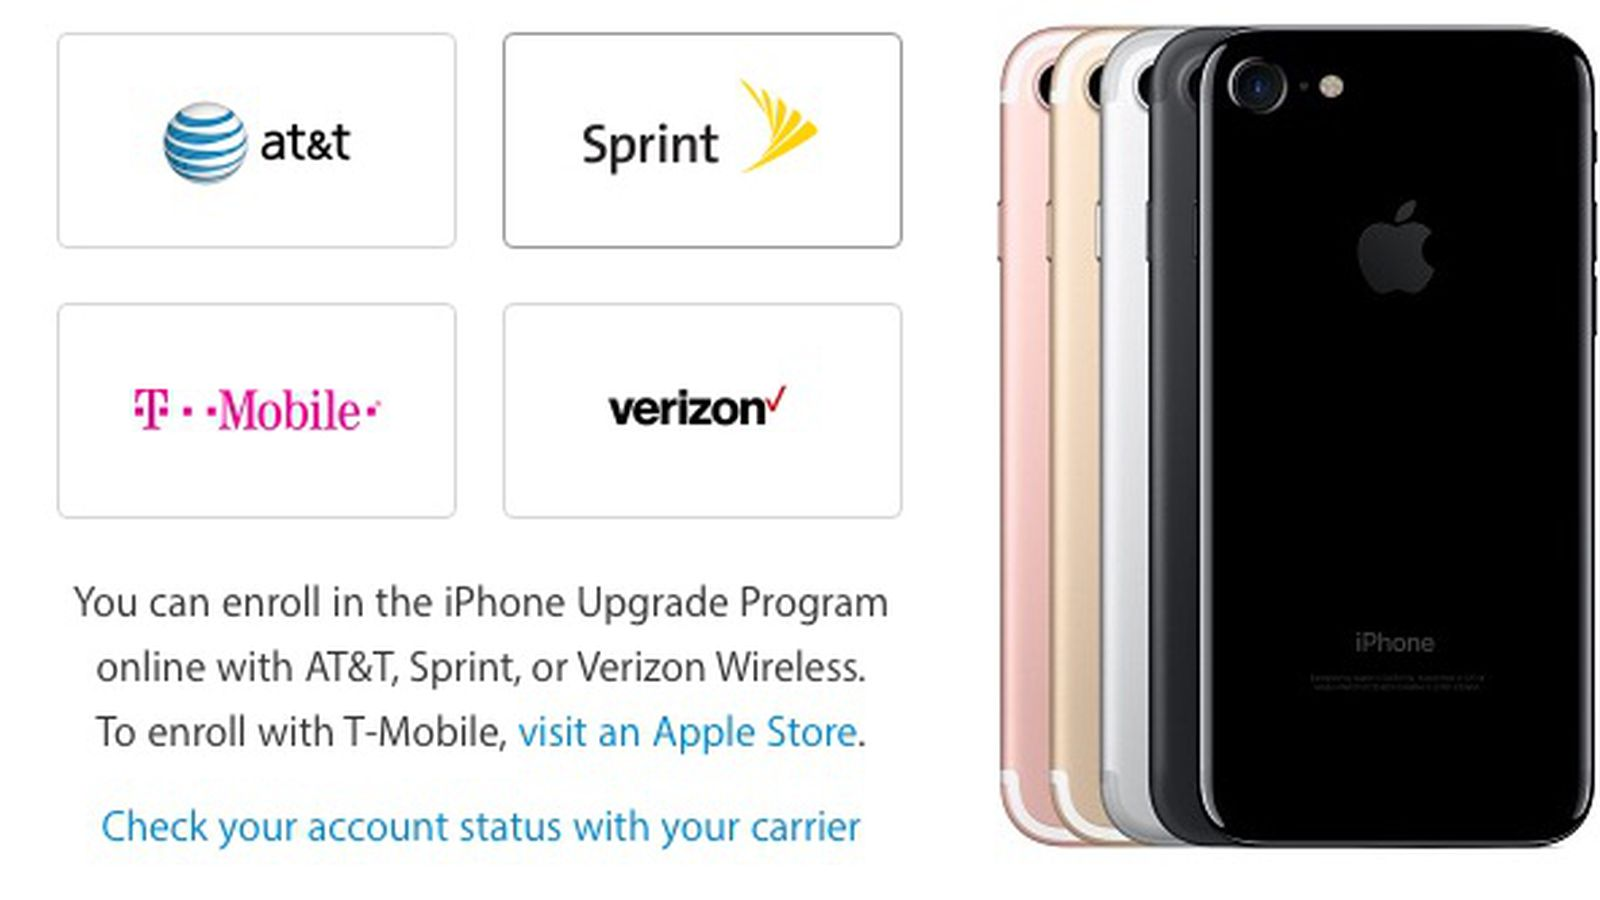 Iphone 7 Models From At T And T Mobile Do Not Support Cdma Networks Macrumors